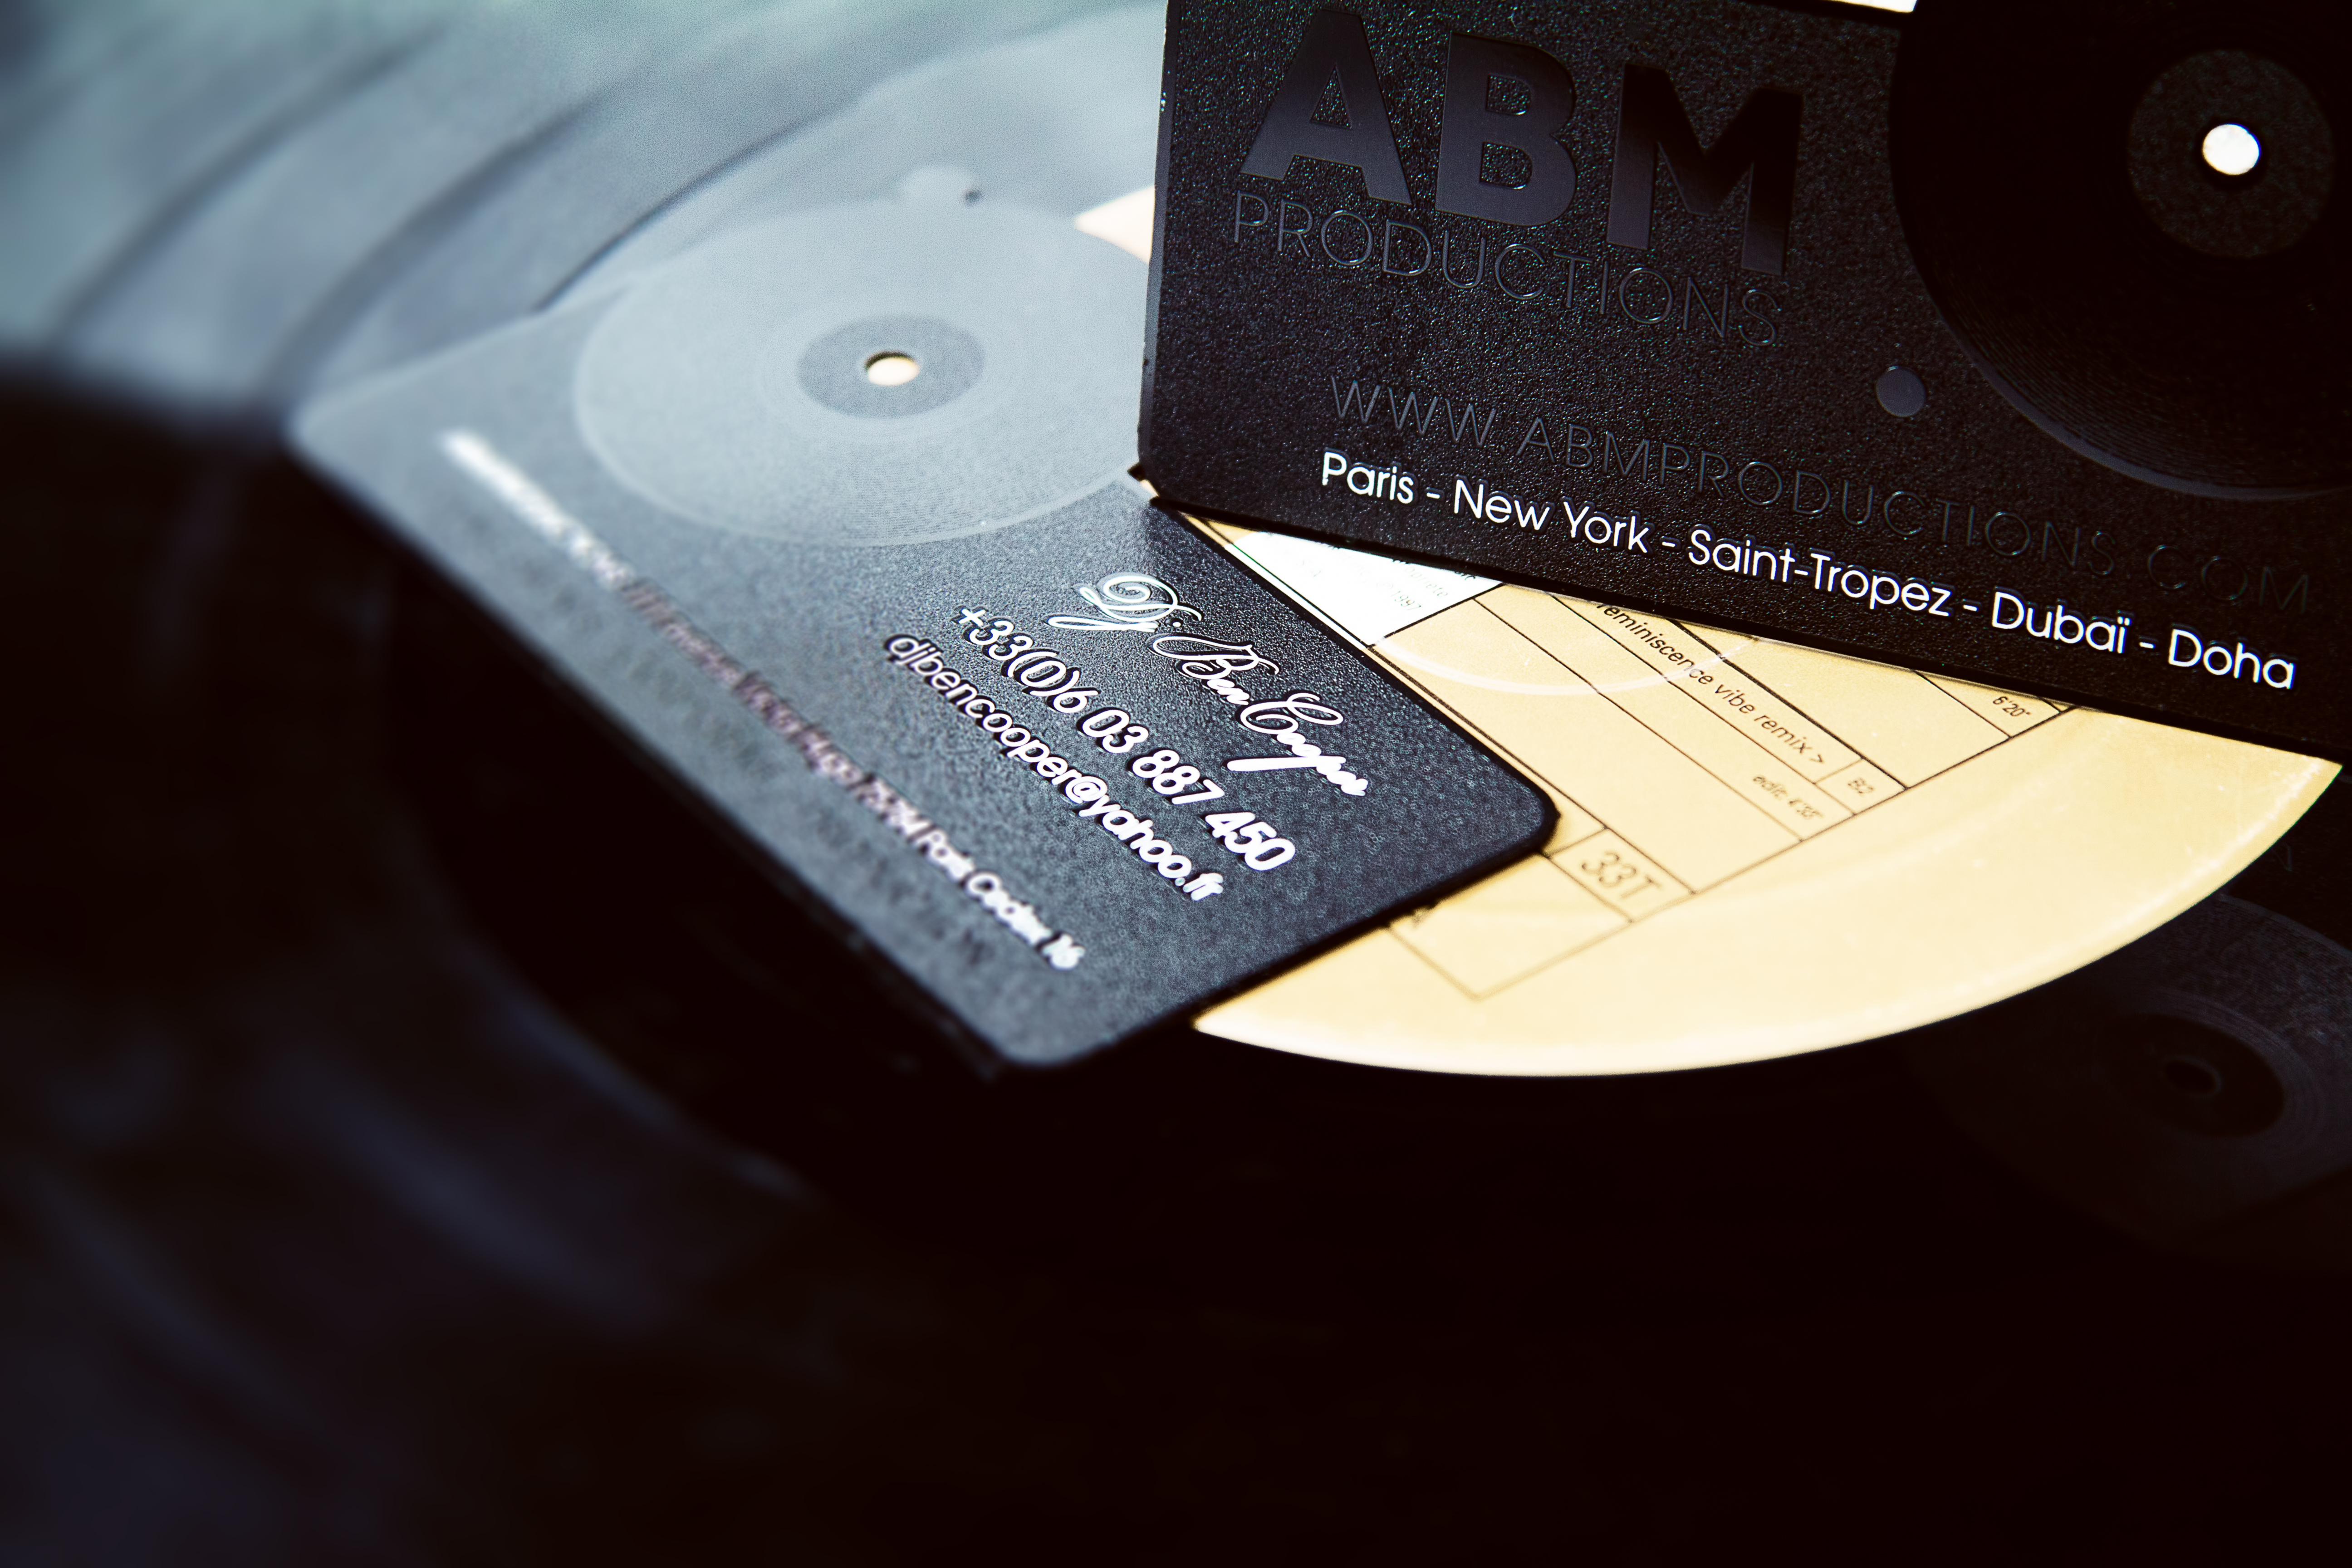 Connu Black Metal Business Card | Impression de Luxe RB82